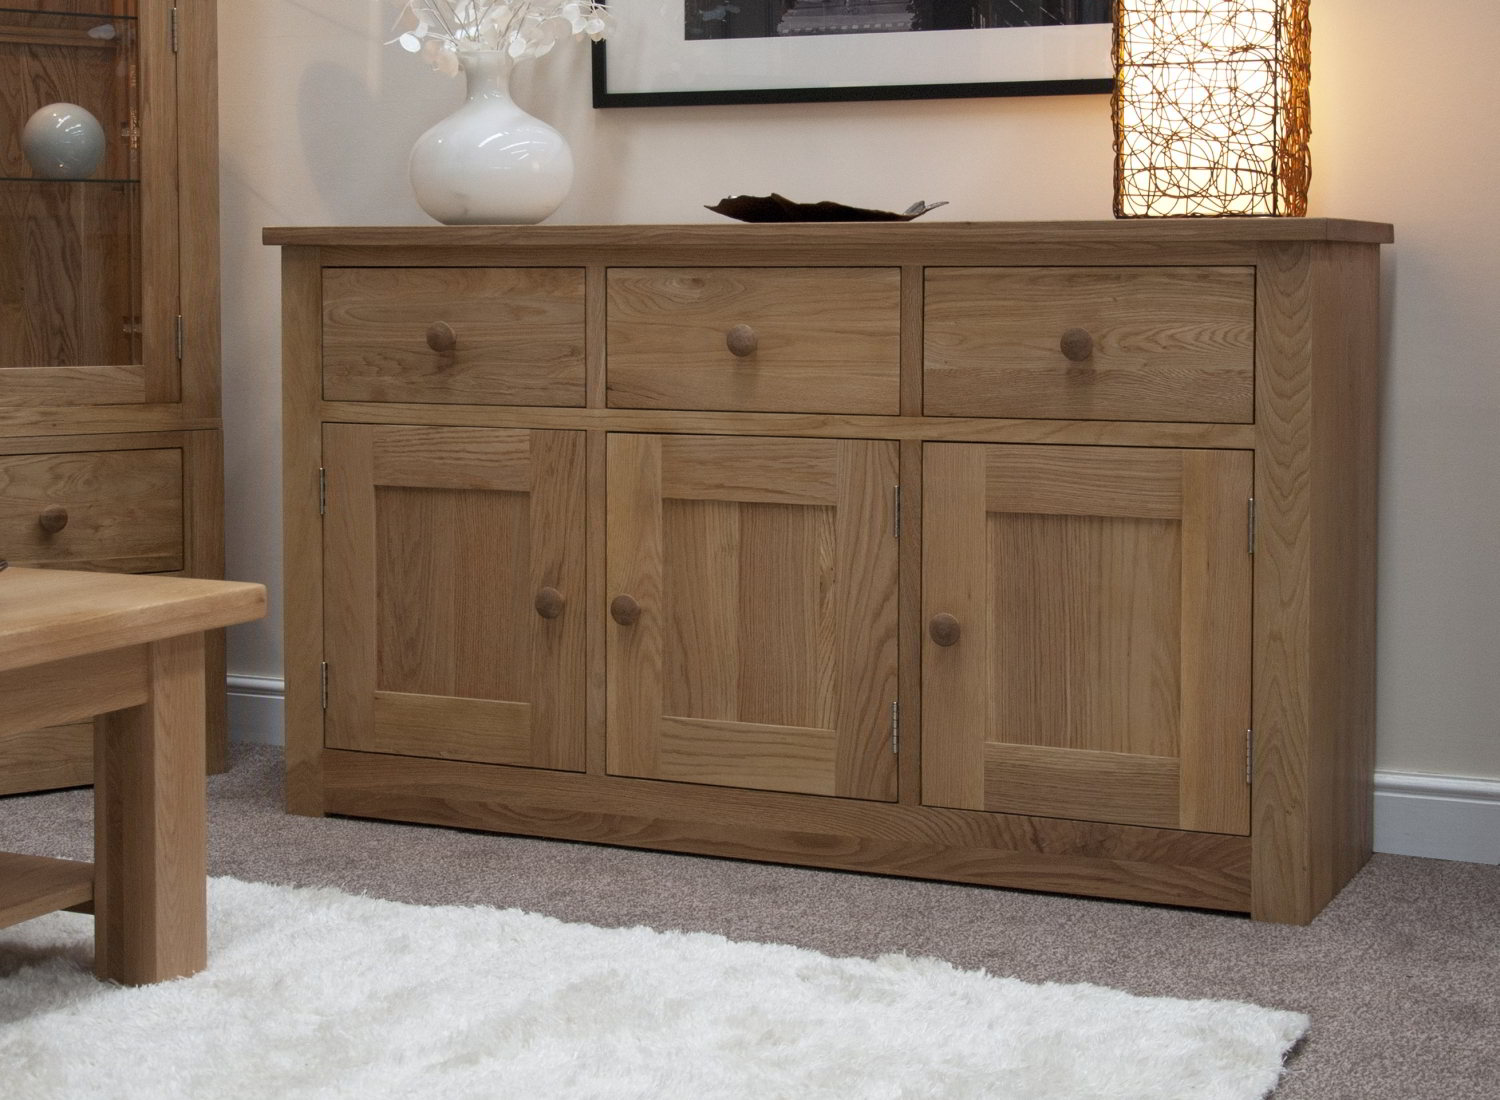 Kingston Solid Oak Living Dining Room Furniture Large Storage Sideboard EBay